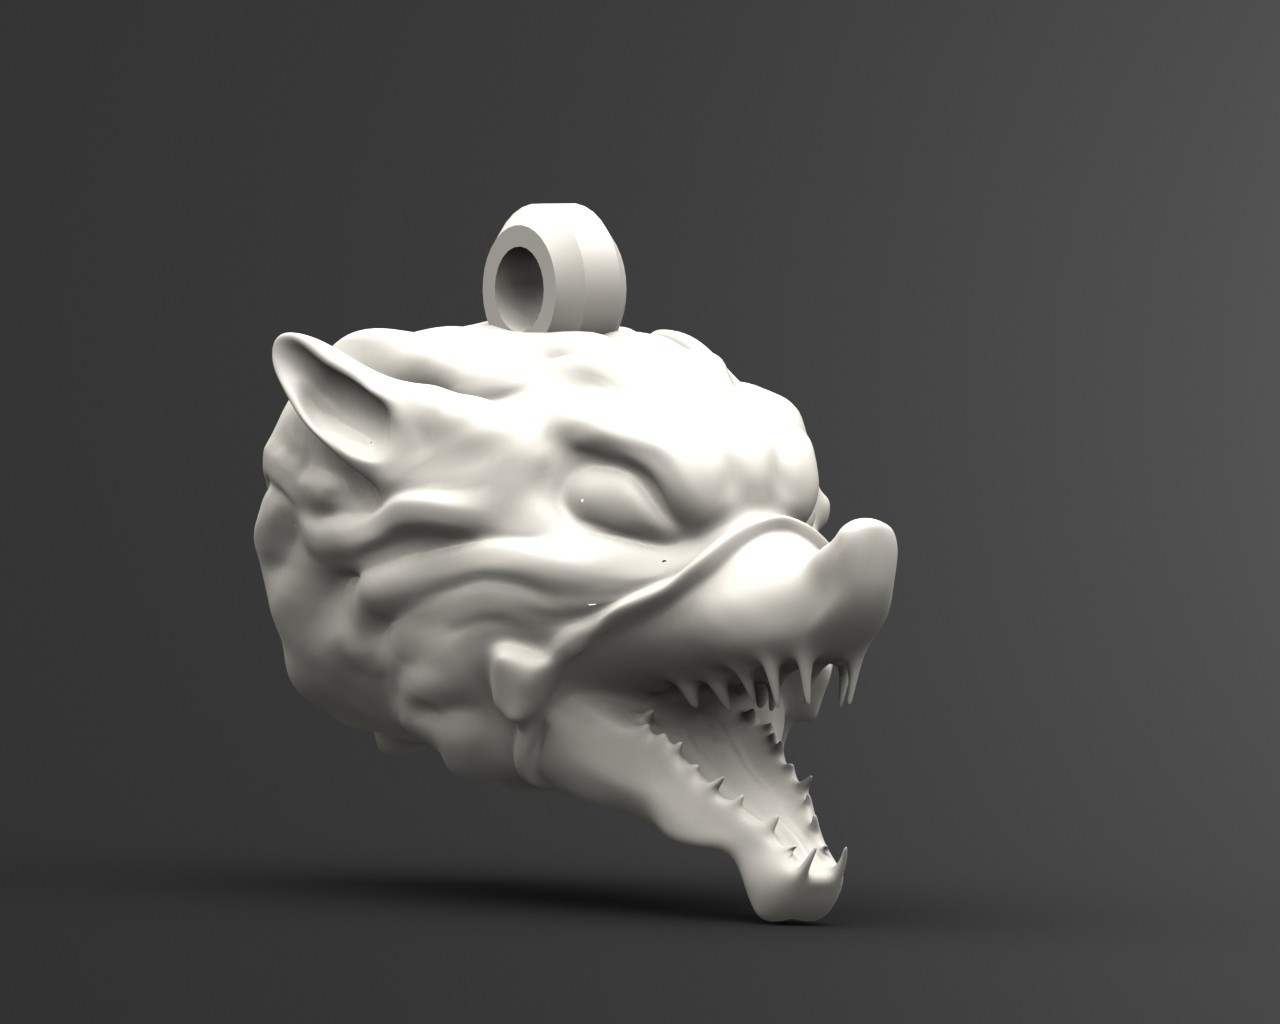 wolf 3.1.JPG Download STL file Wolf head keychain • 3D printable object, Majs84